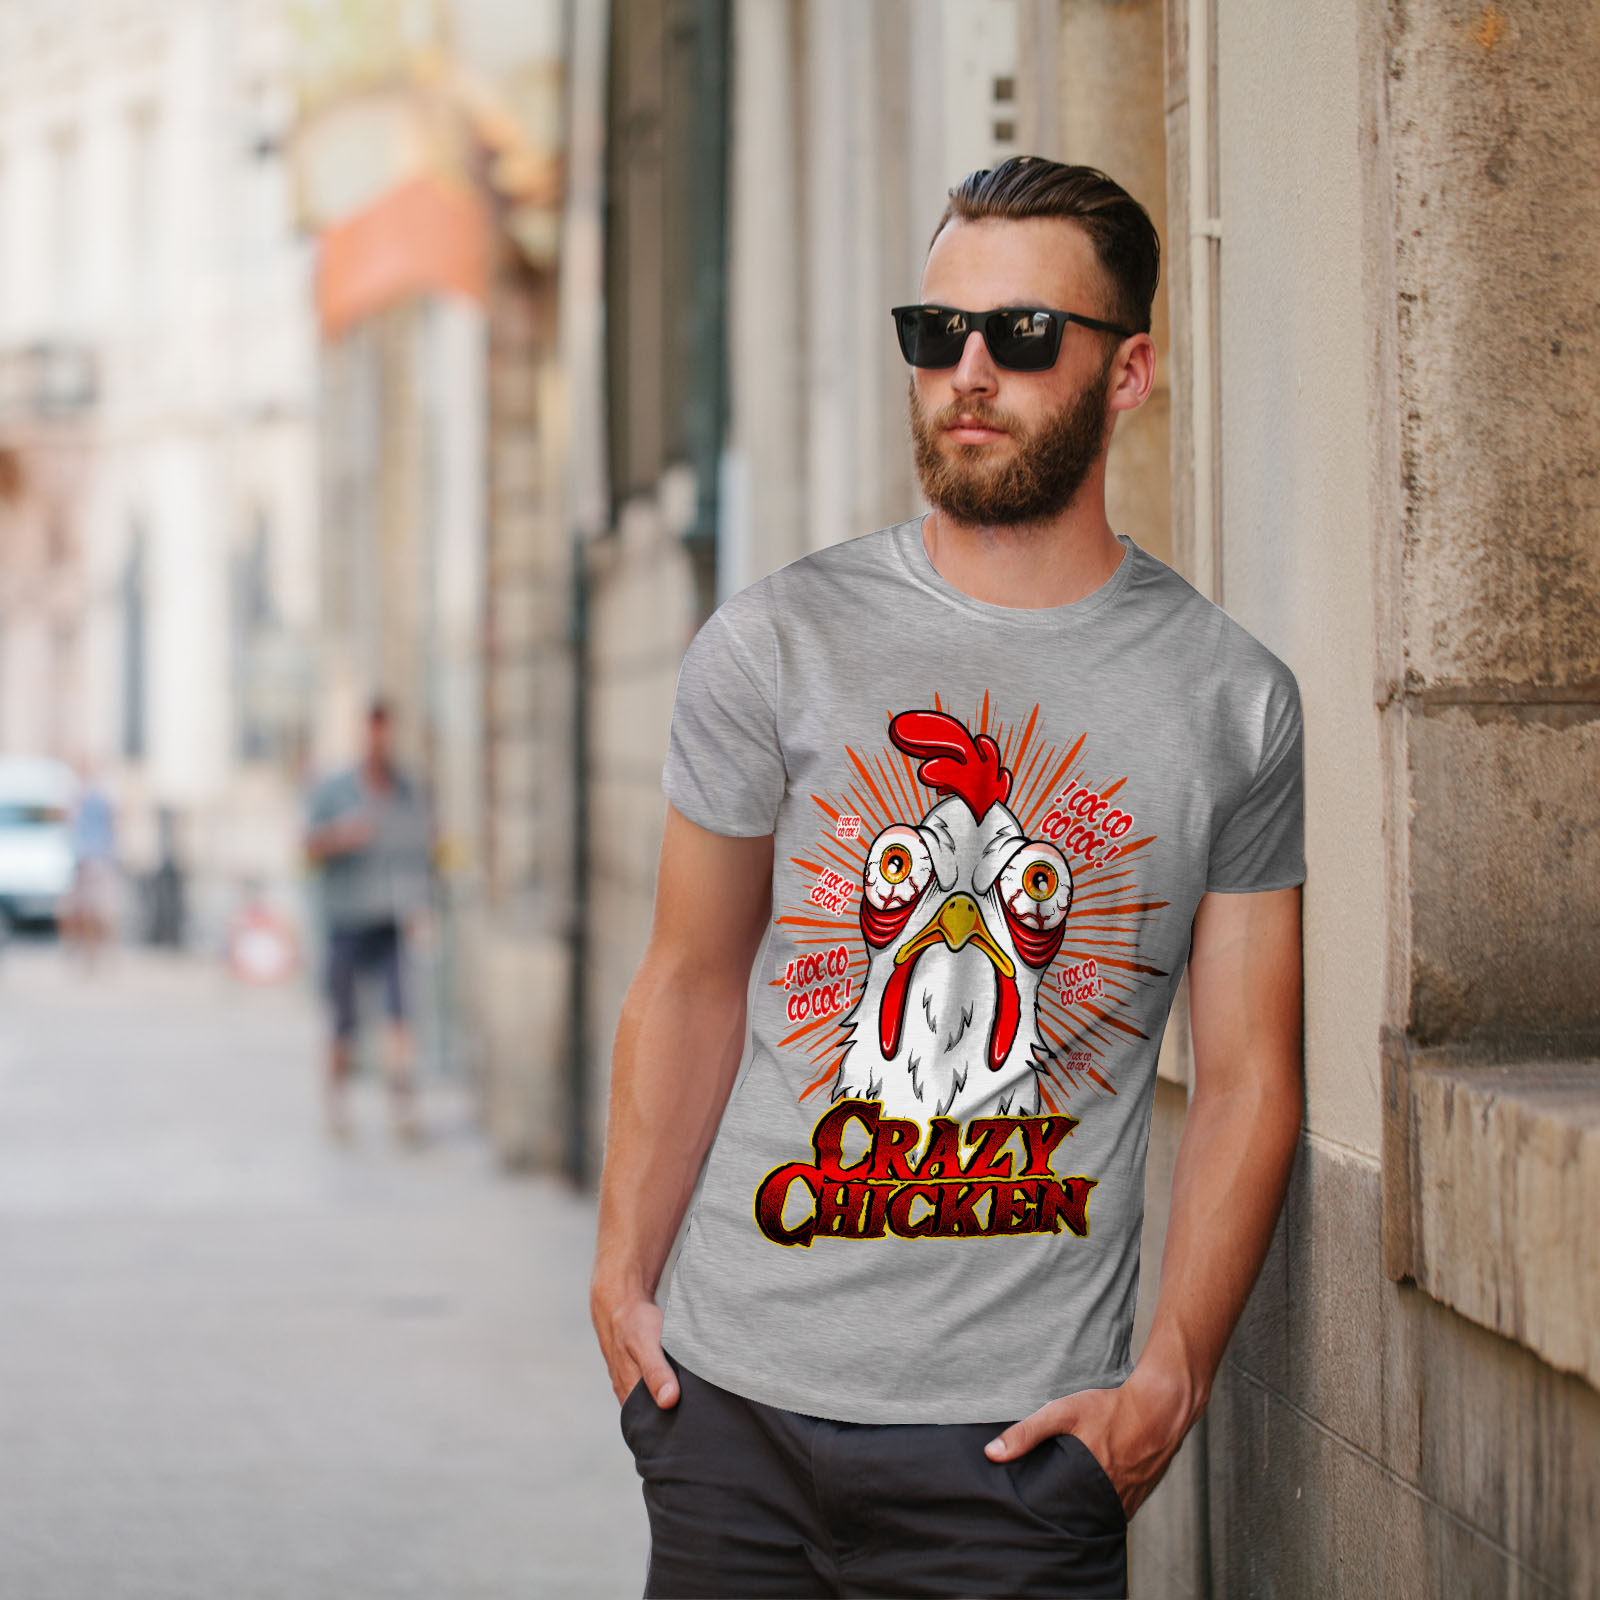 thumbnail 17 - Wellcoda-Crazy-Chicken-Mens-T-shirt-Funny-Face-Graphic-Design-Printed-Tee